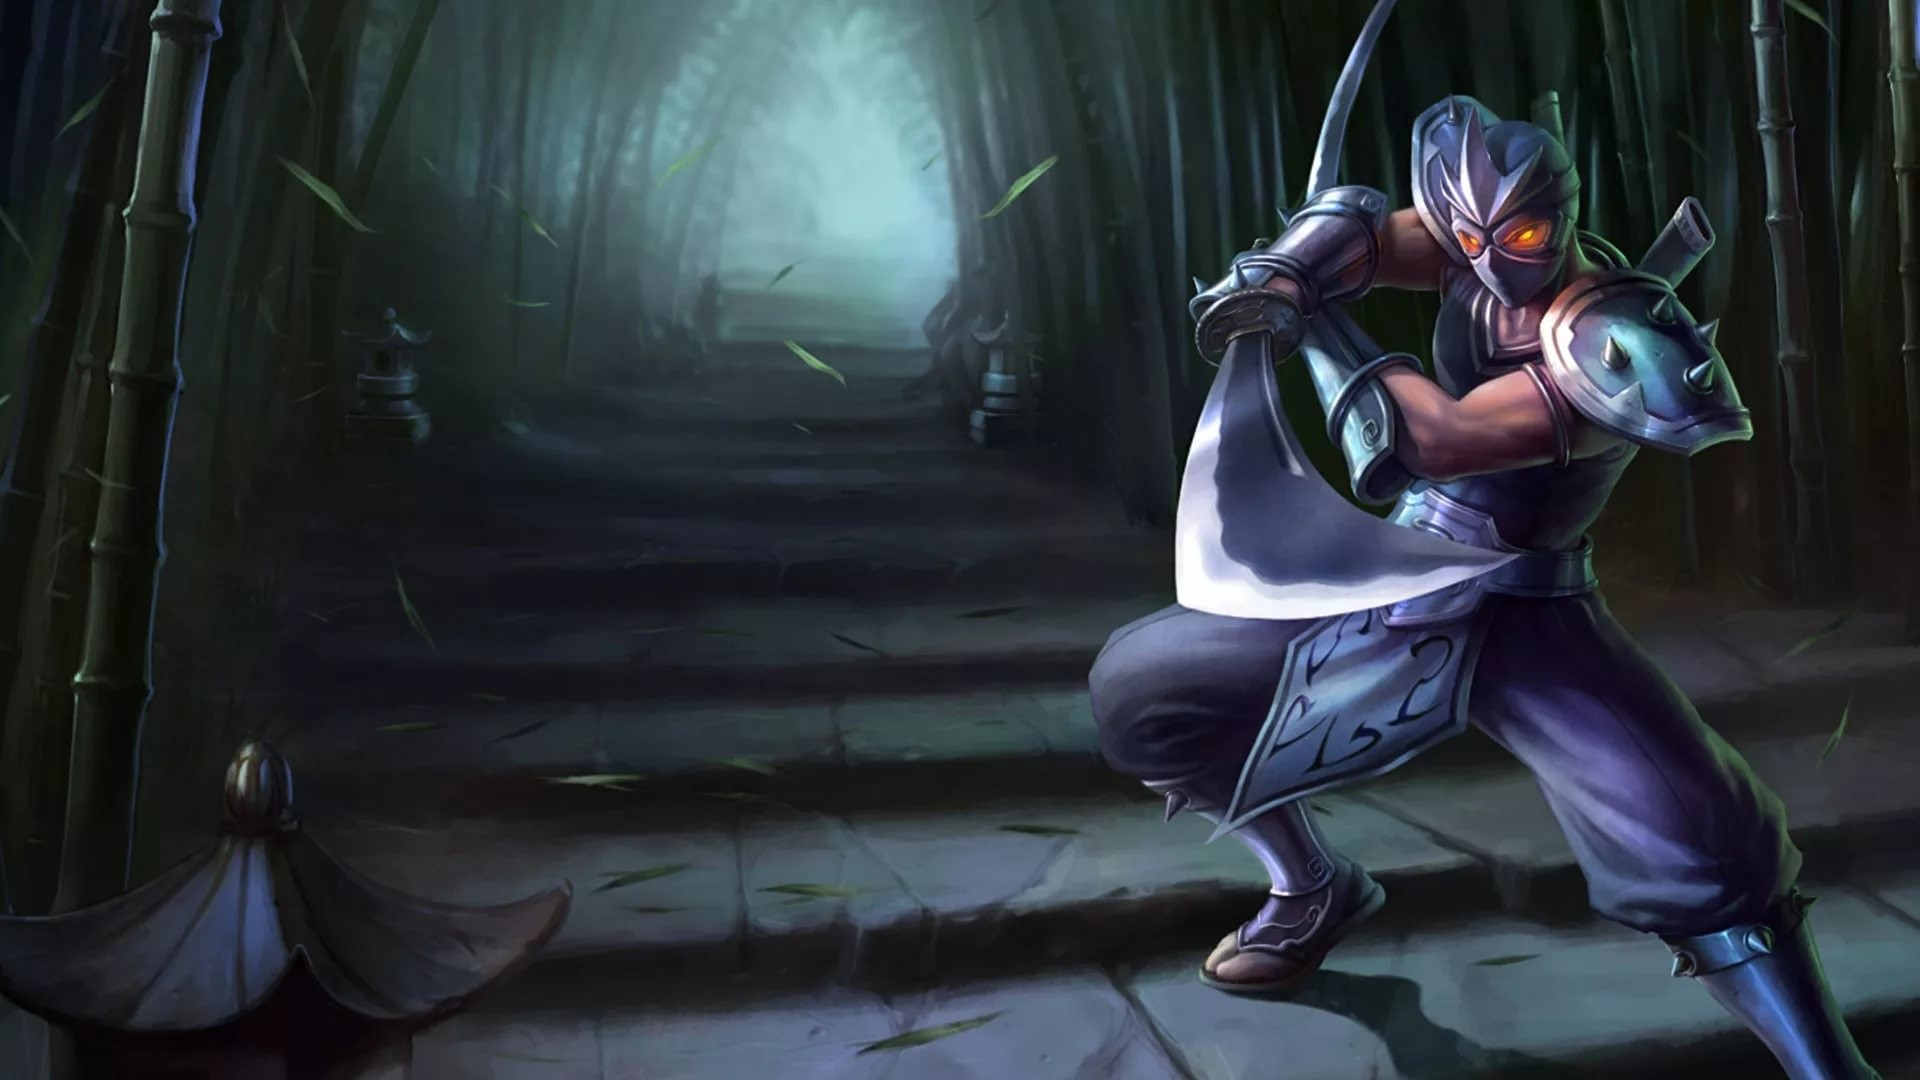 Res: 1920x1080, All Shen wallpapers